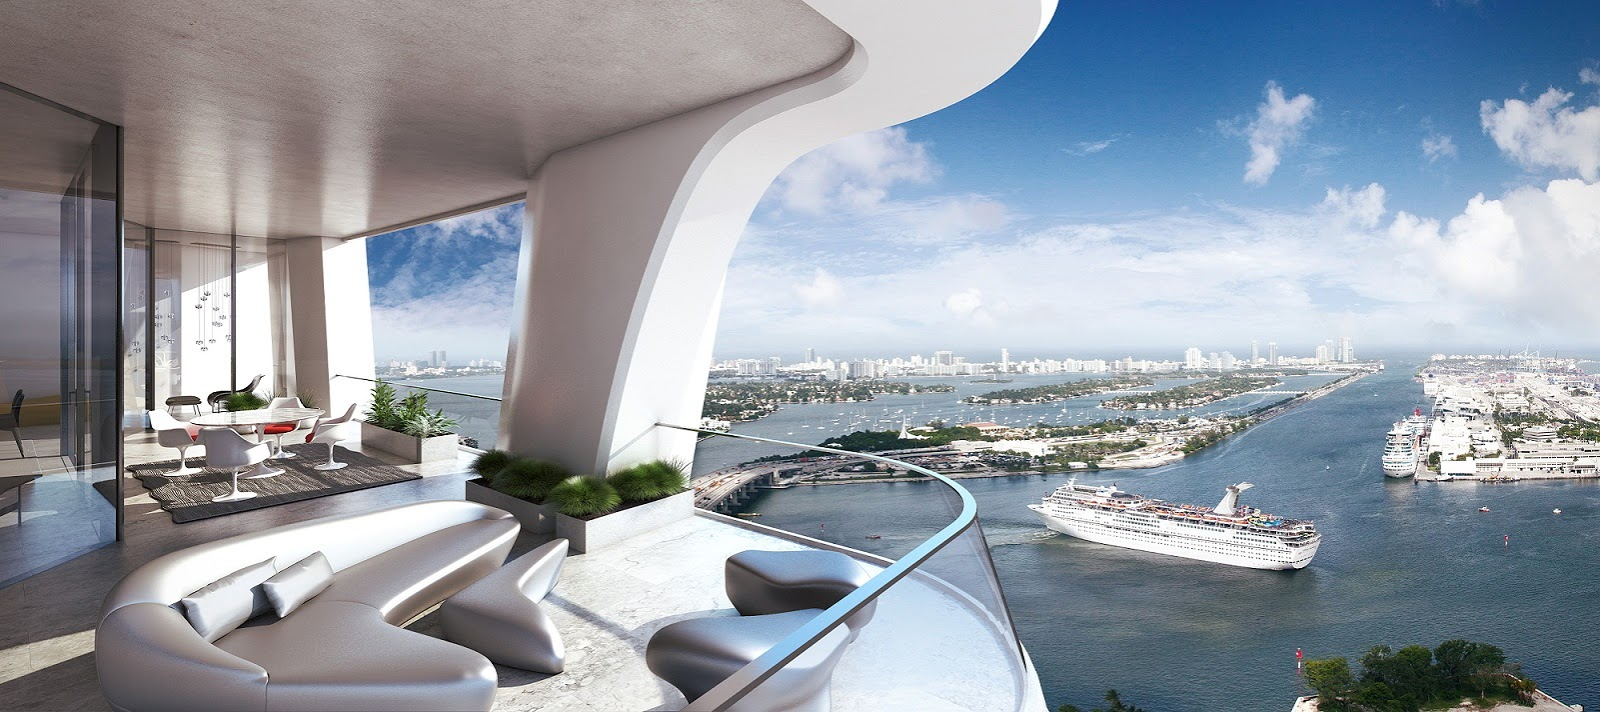 Zaha Hadid Design Project 1000 Museum In Miami Beach Usa